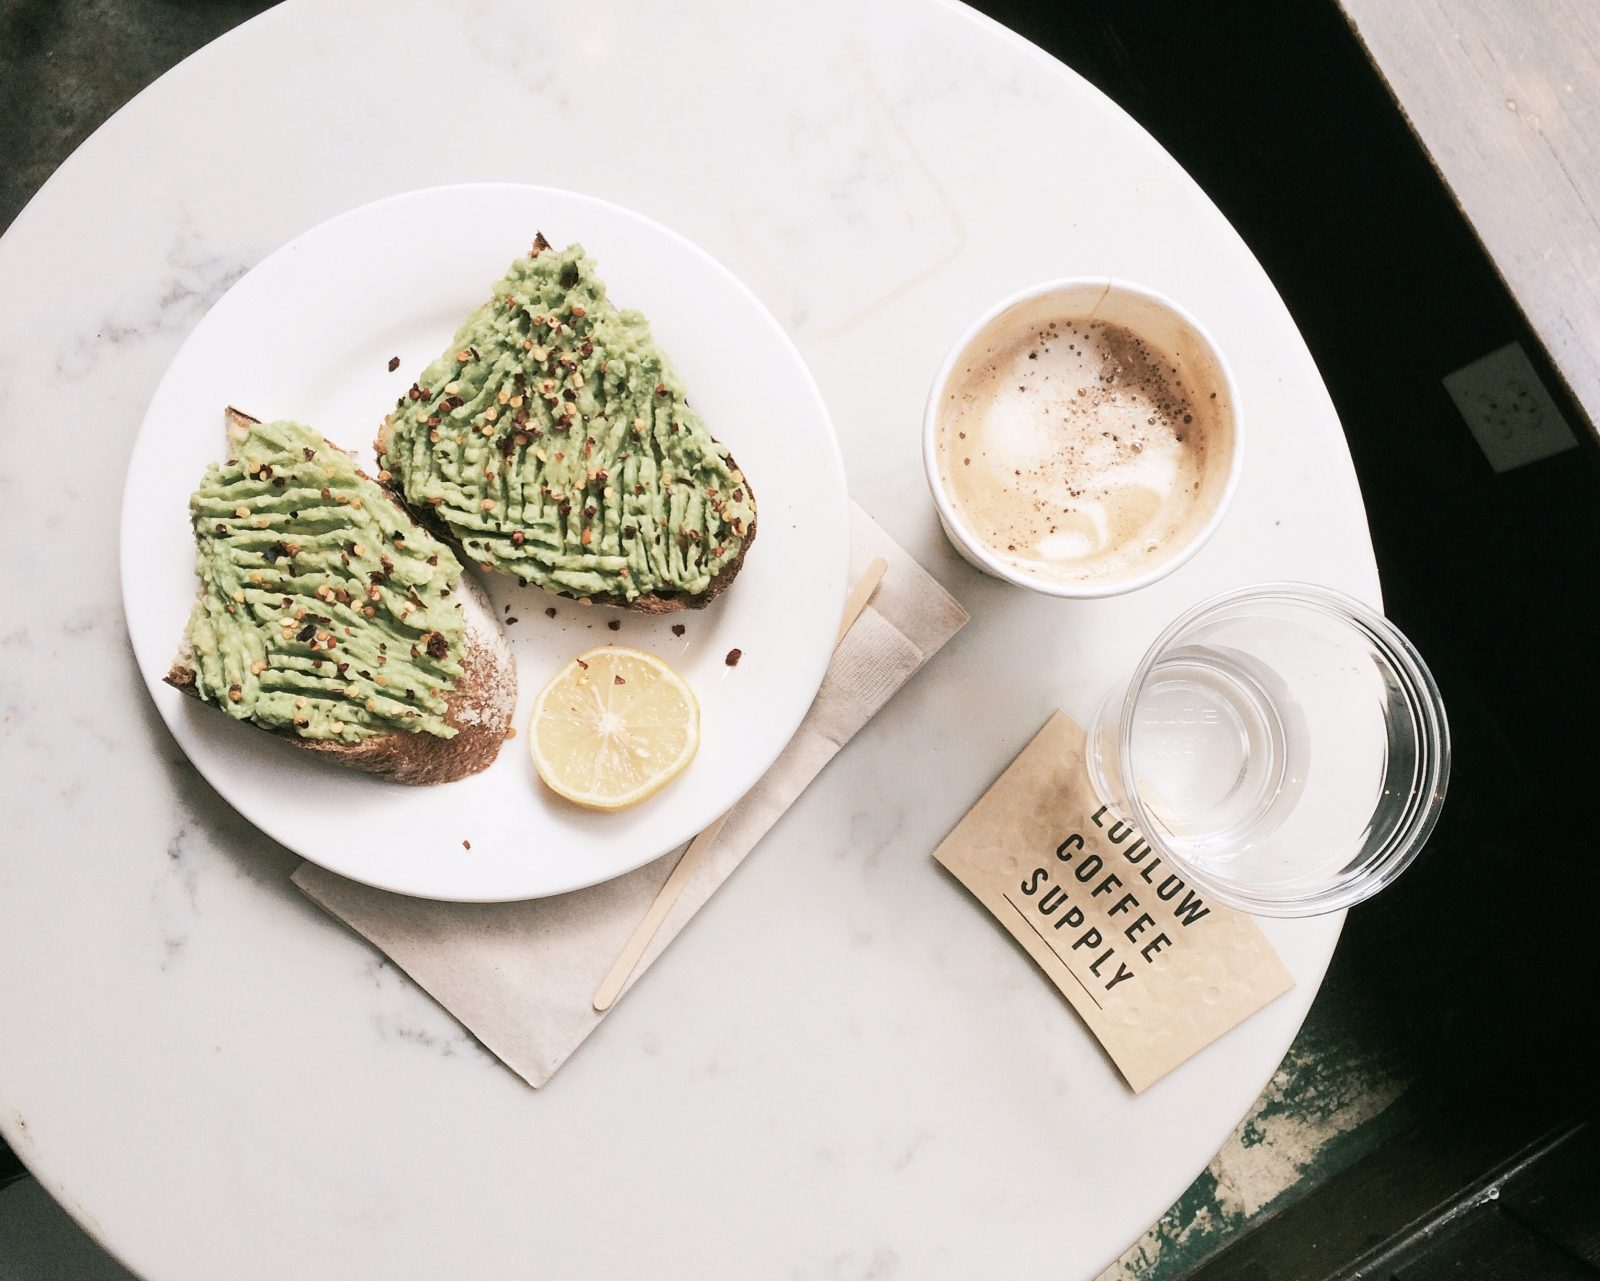 Food to try in Australia: Avocado toast, just missing the poached egg!